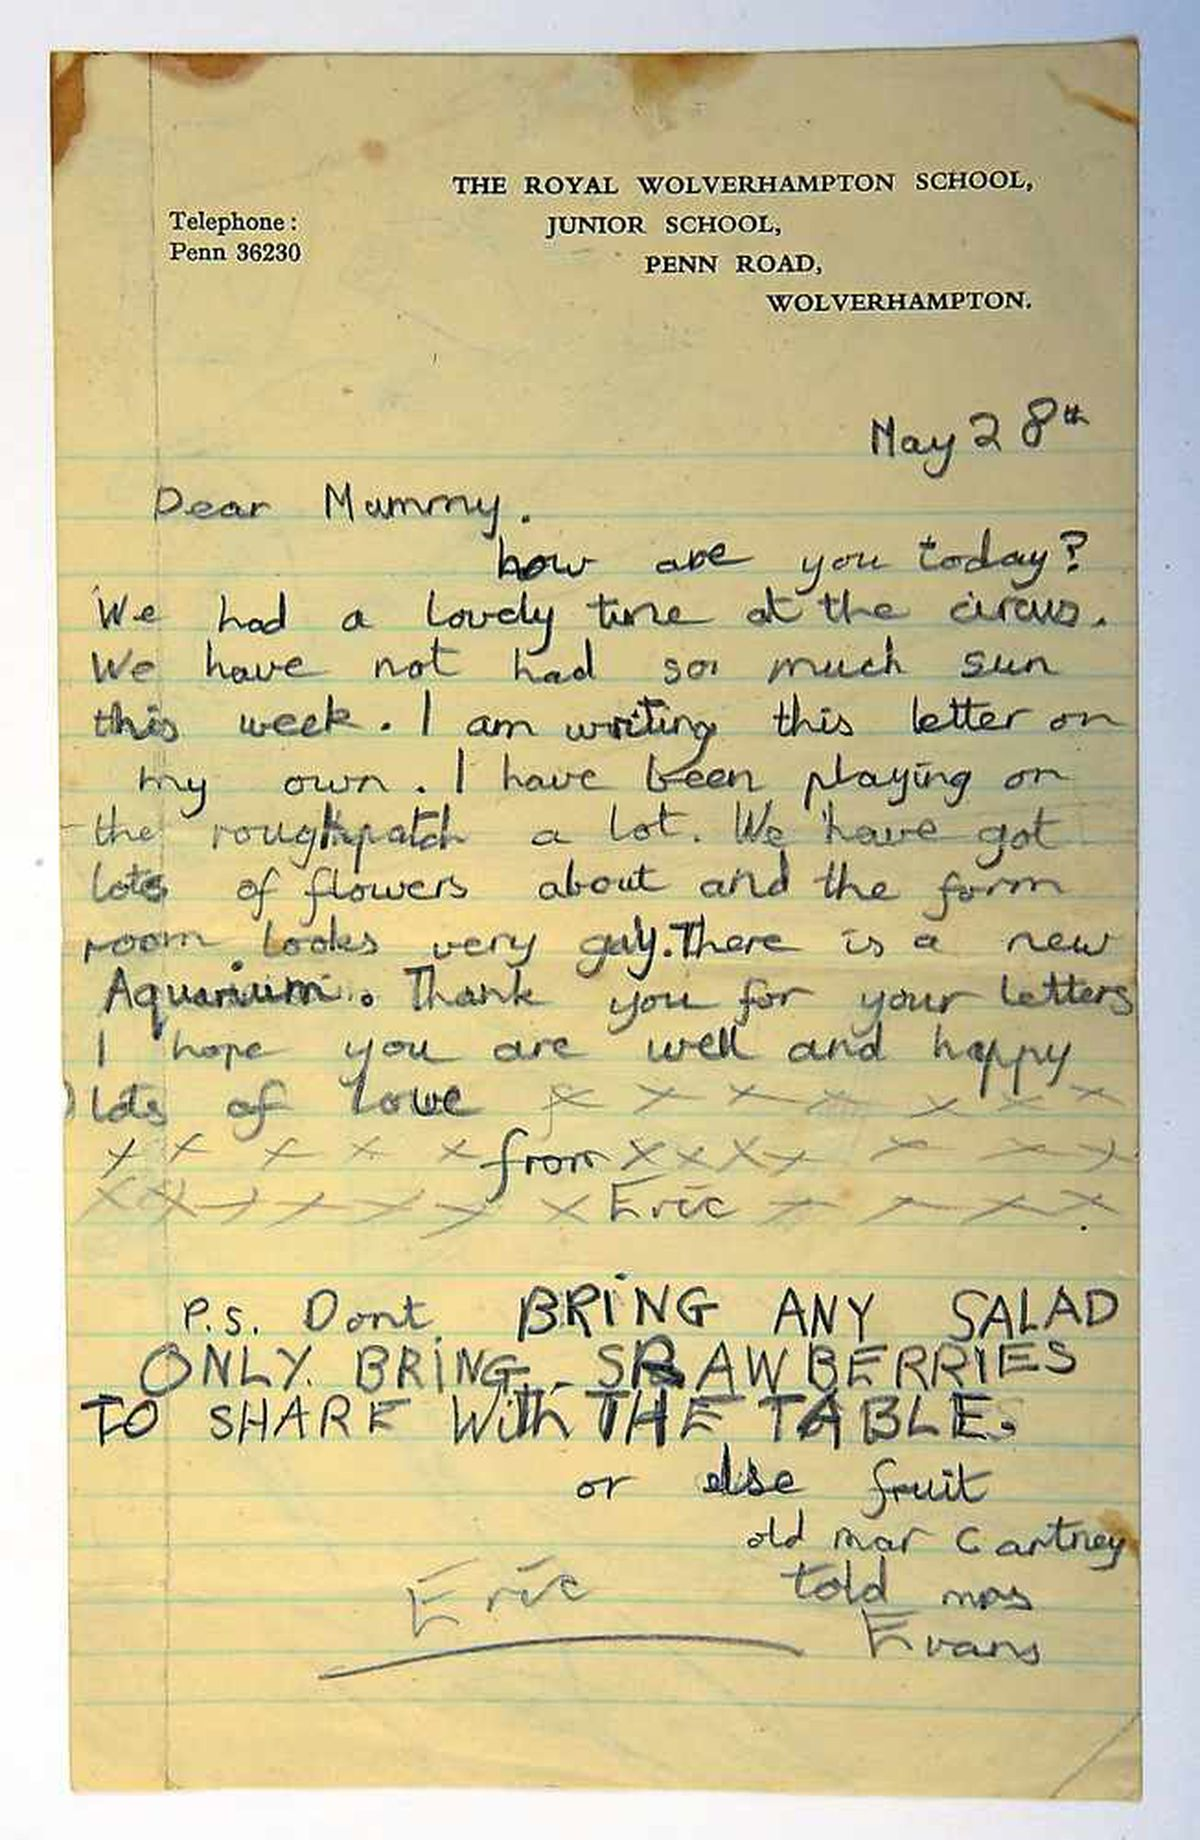 A letter to his mother from his time at the school